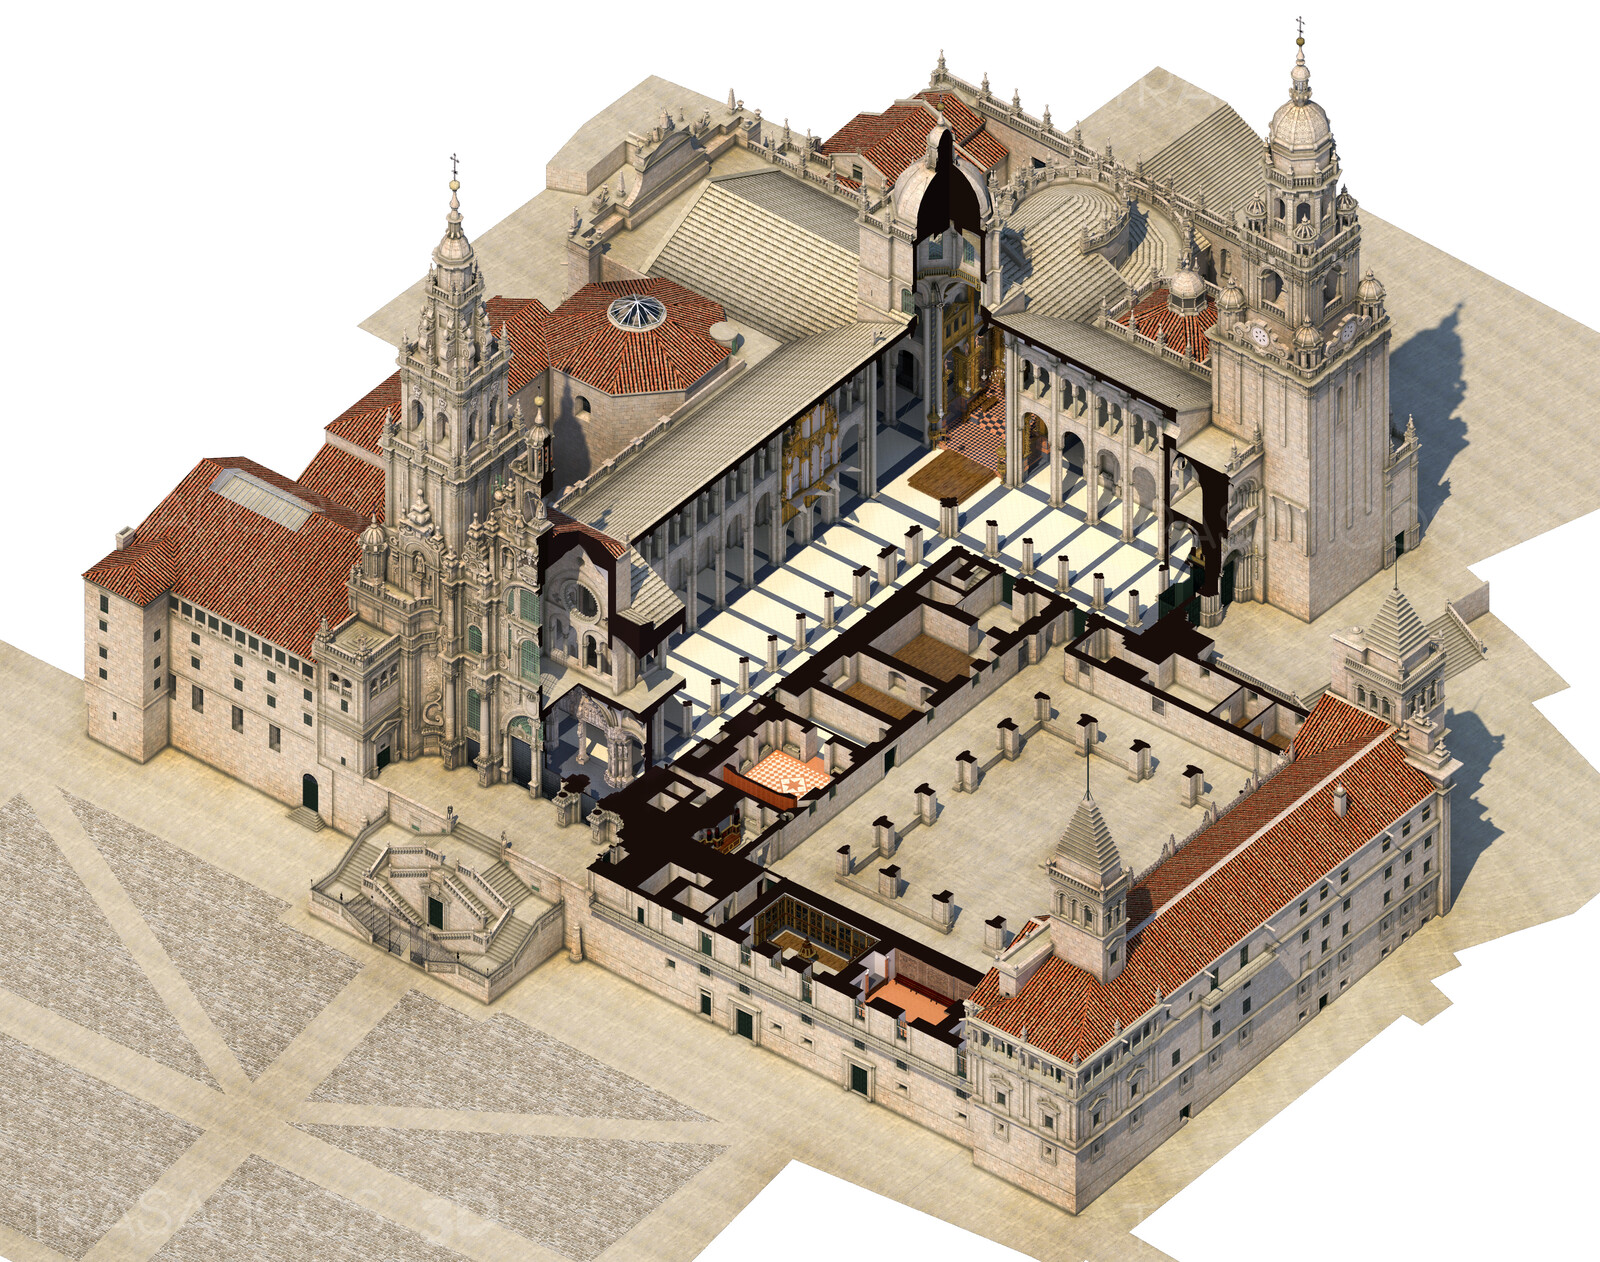 3D illustration. Cut Away. Section showing the interior of the cathedral complex including the cloister and the attached chapels.